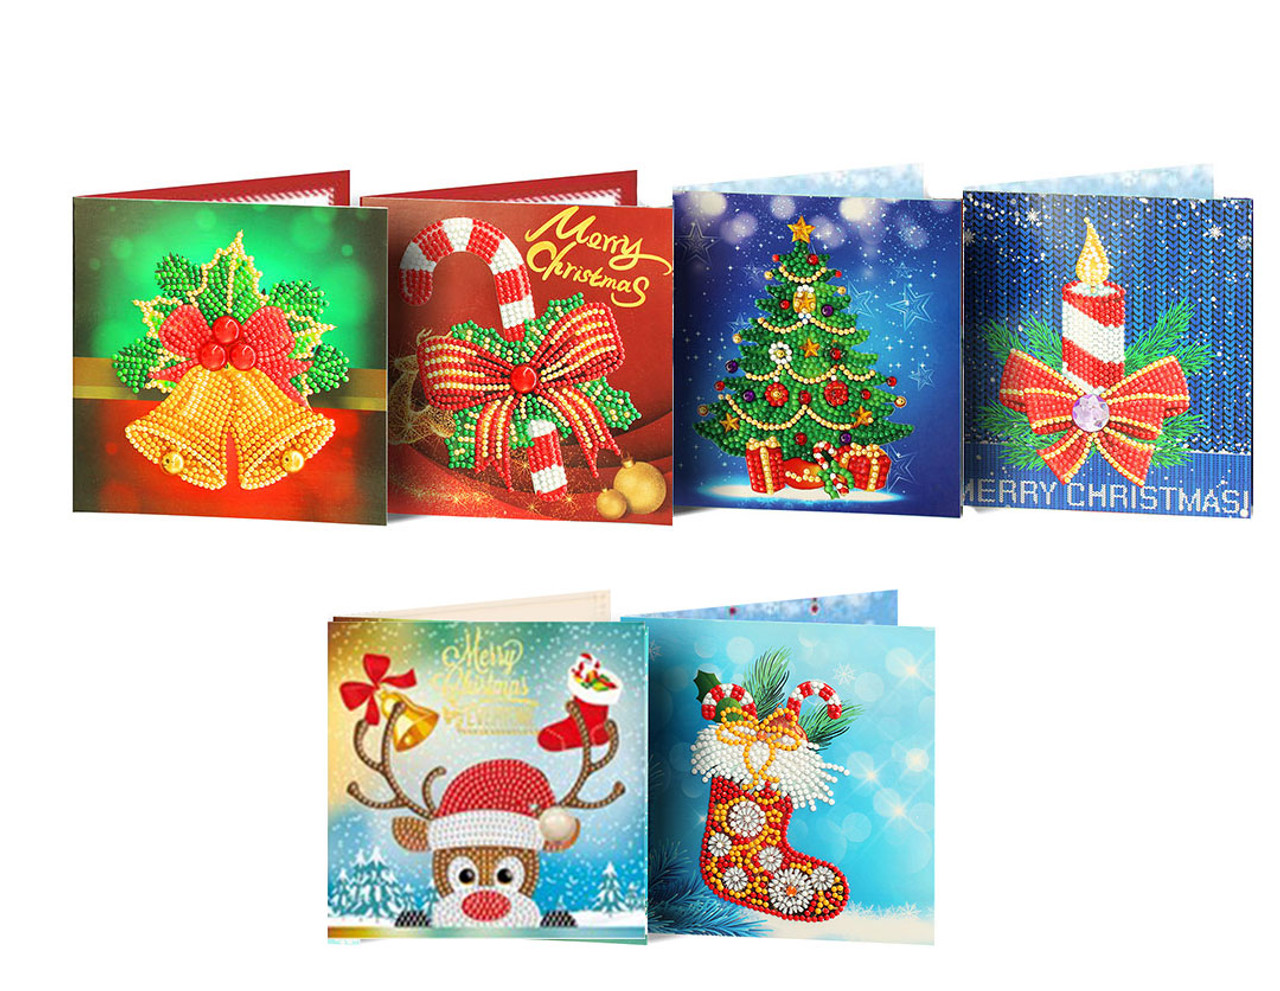 5D DIY Diamond Painting Christmas Card Kit - Set of 6